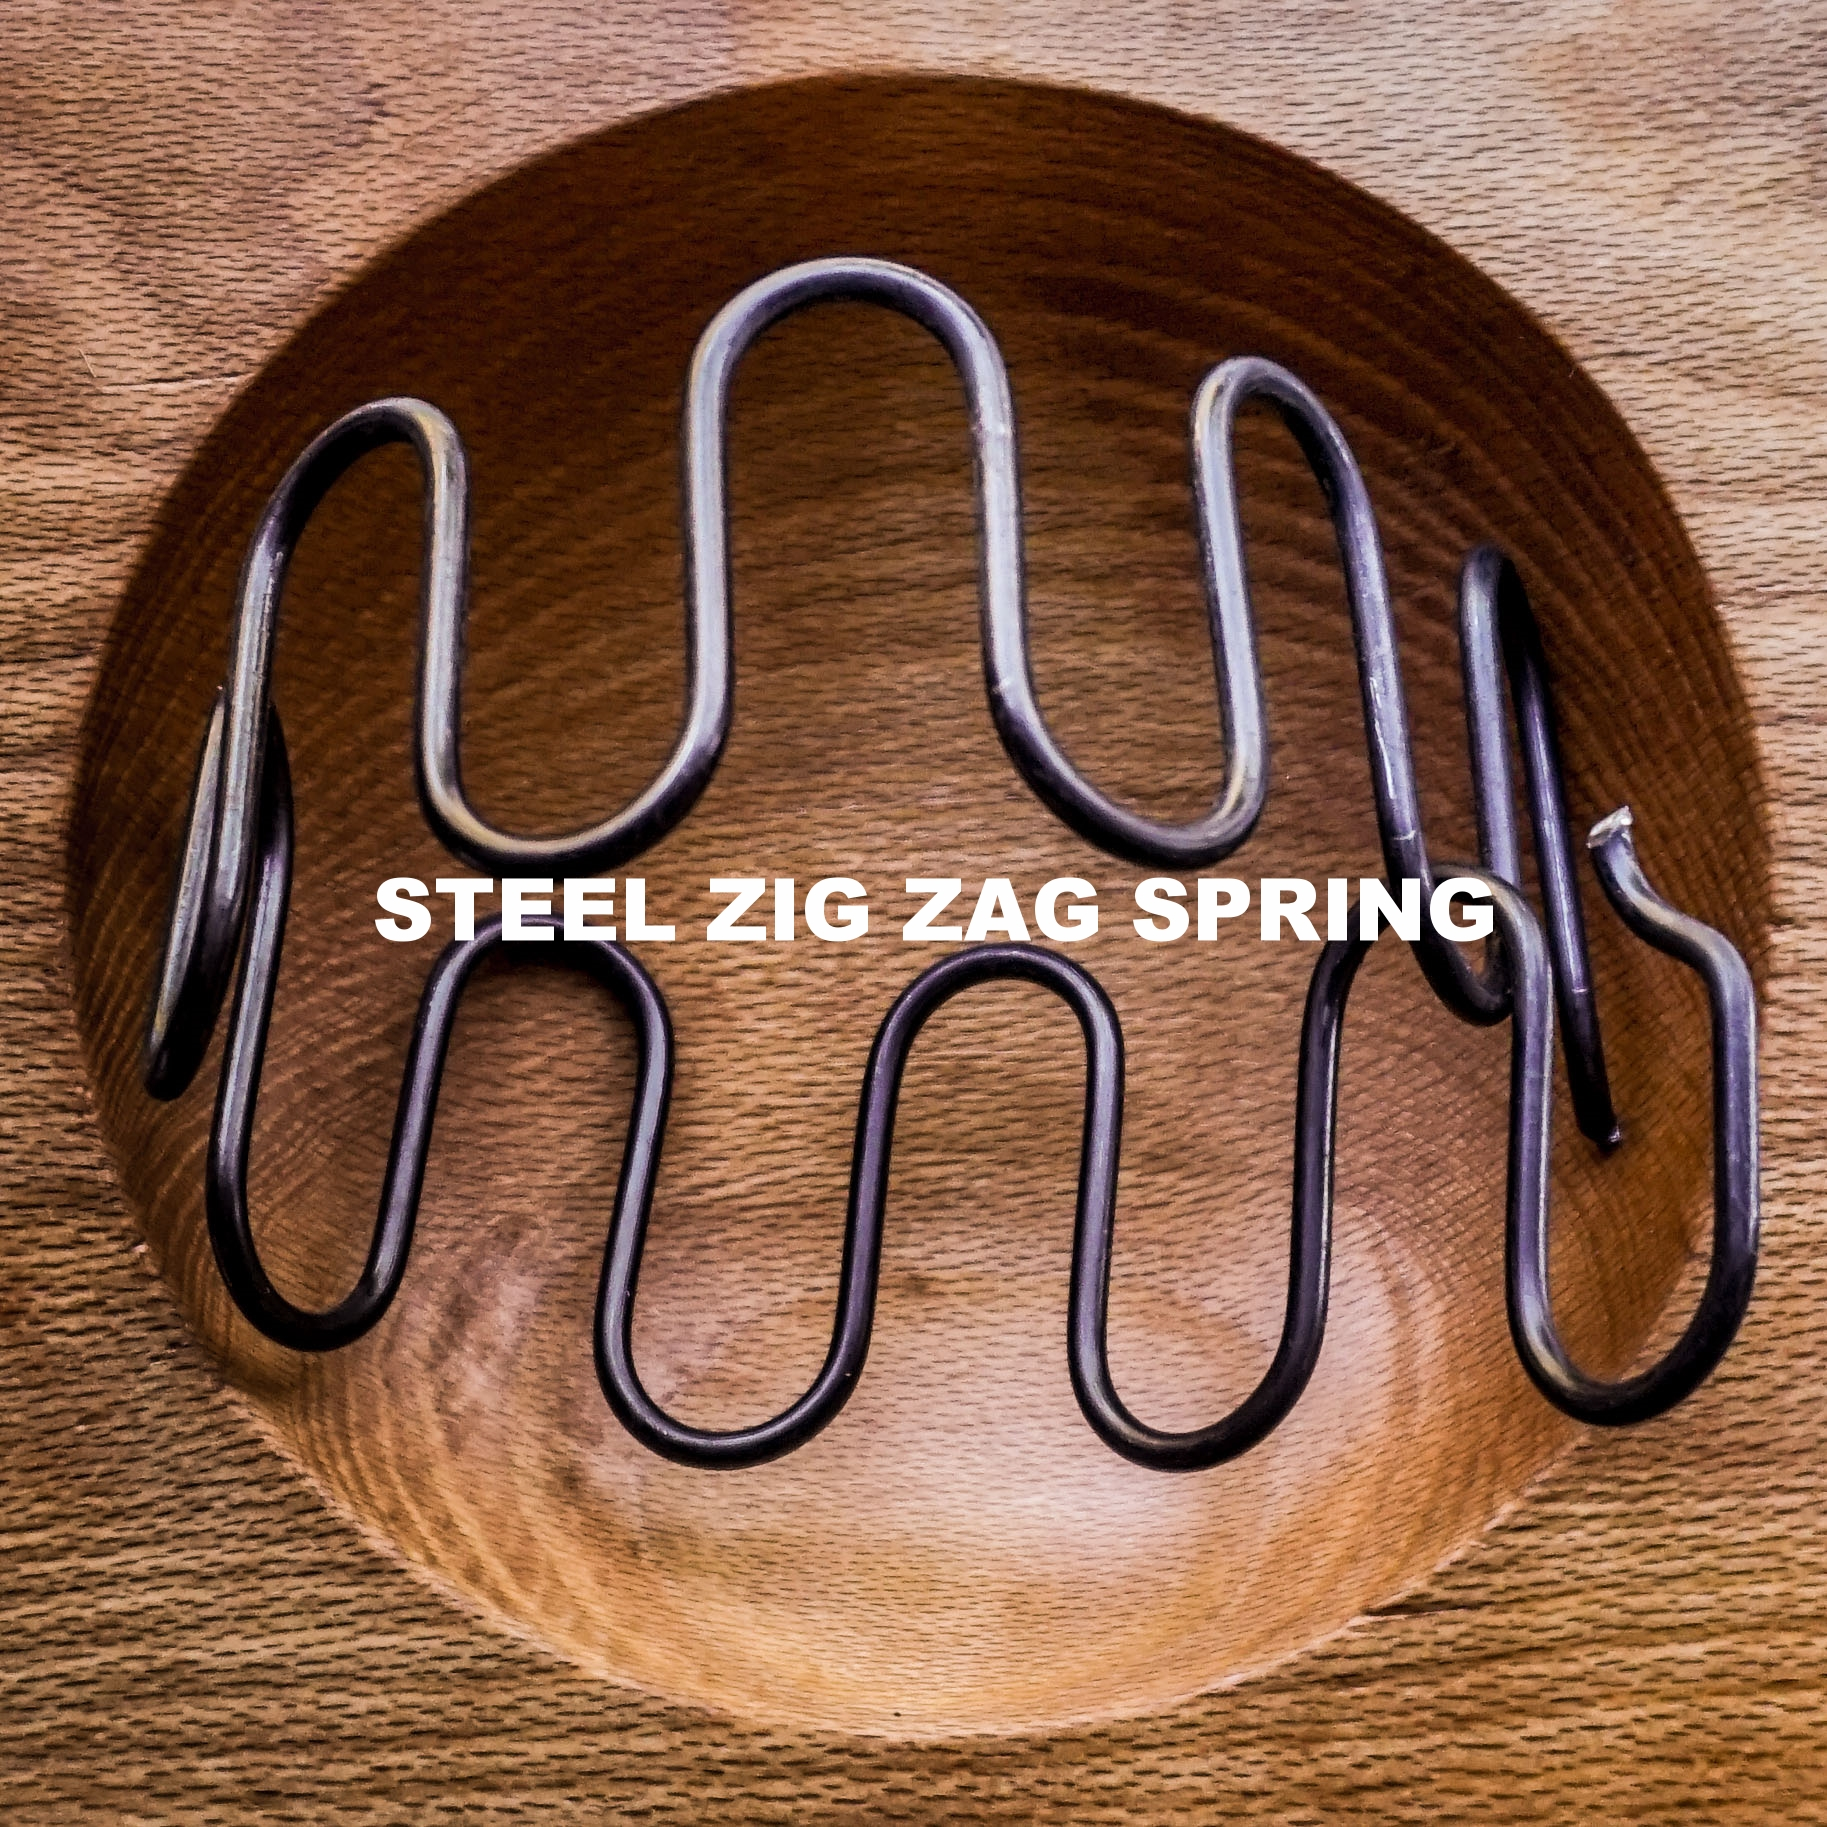 STEEL ZIG ZIG SPRINGS